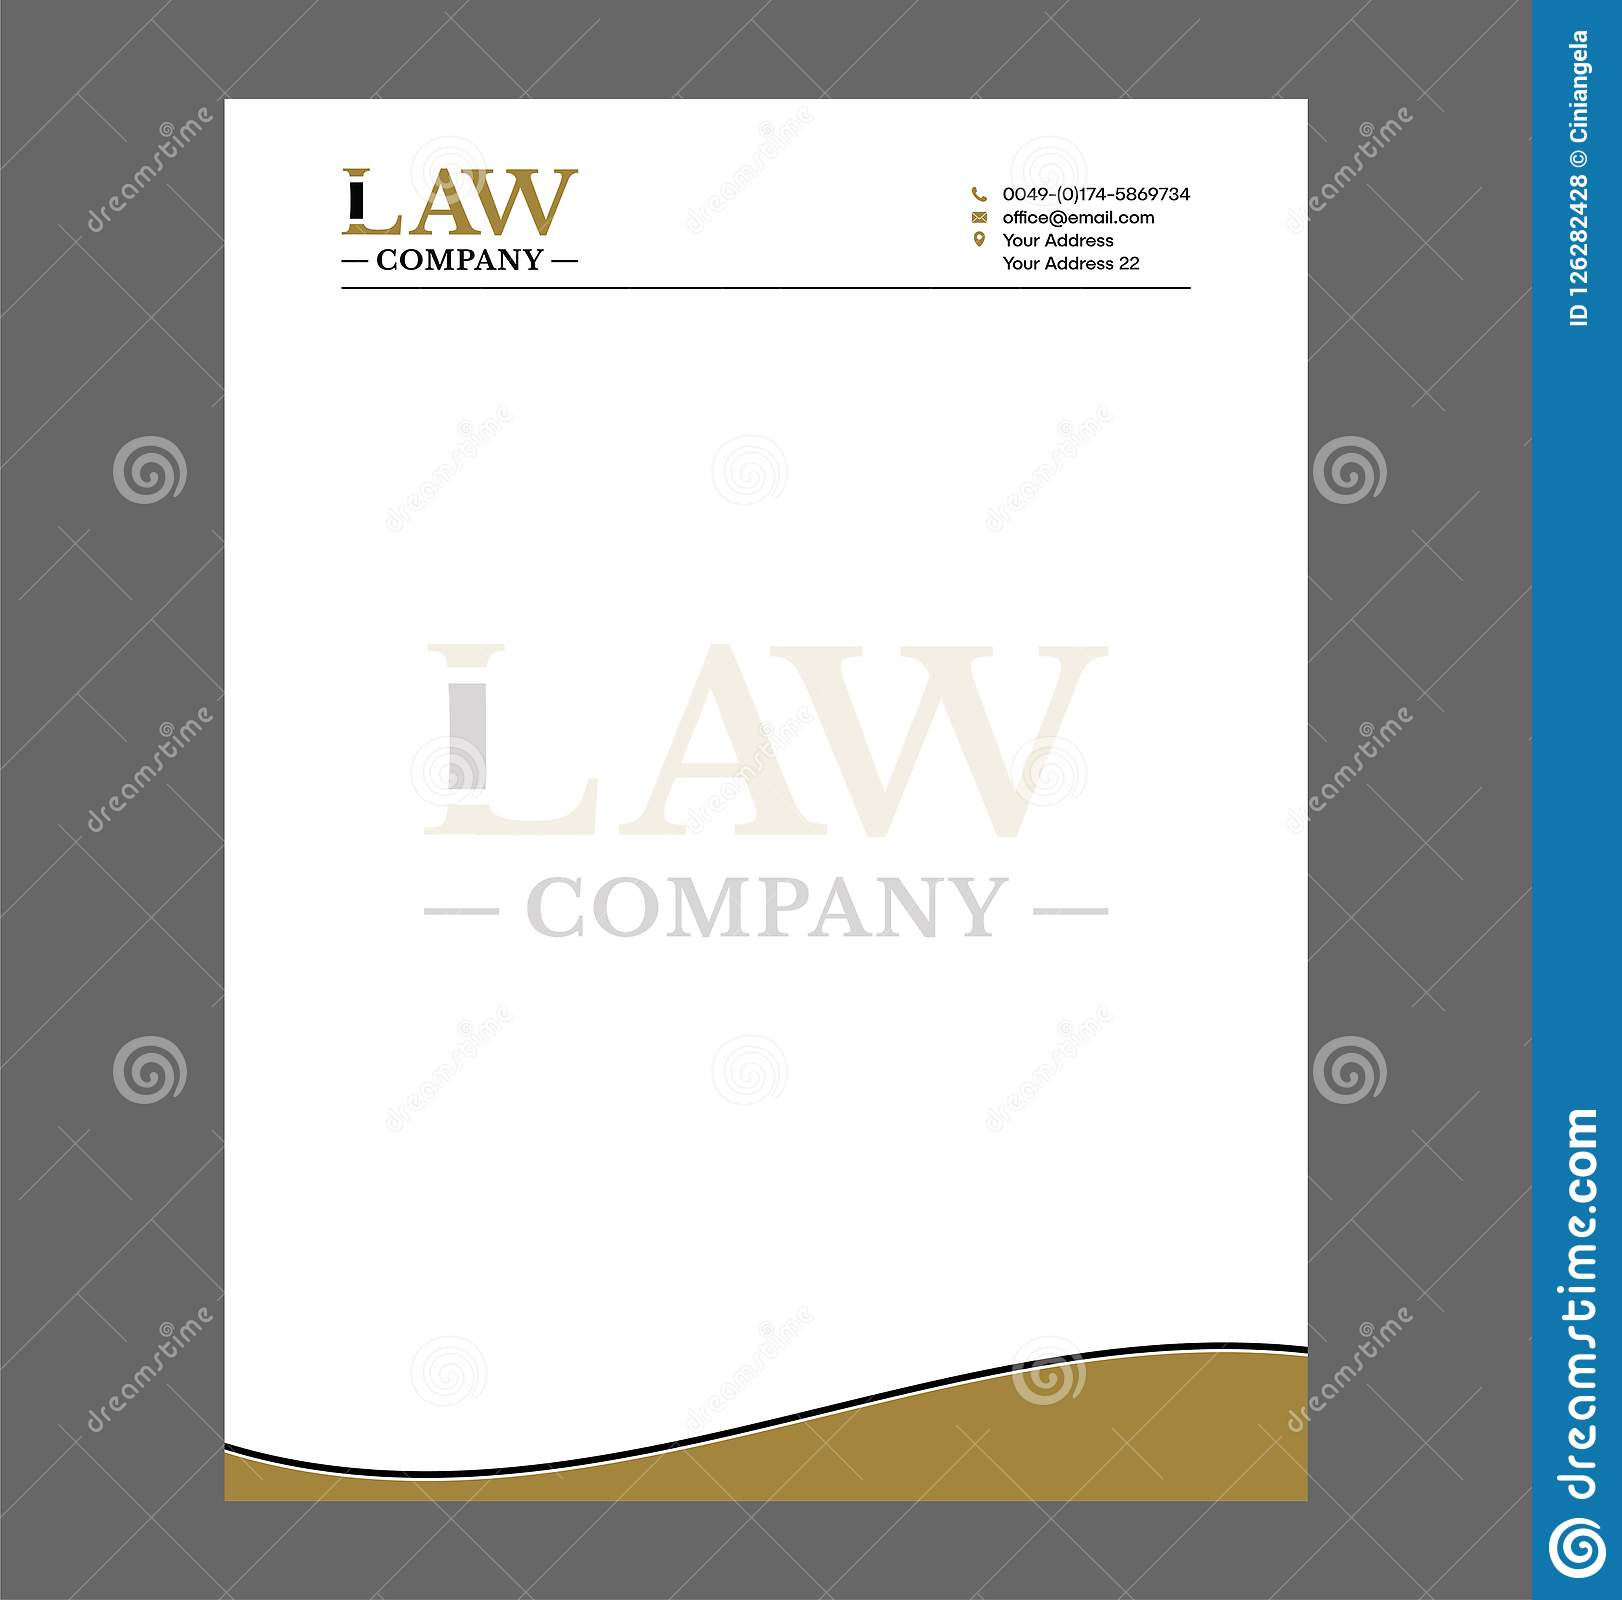 Legal Letterhead Template | Law Or Attorney Letterhead Template For Print With Logo Stock Vector